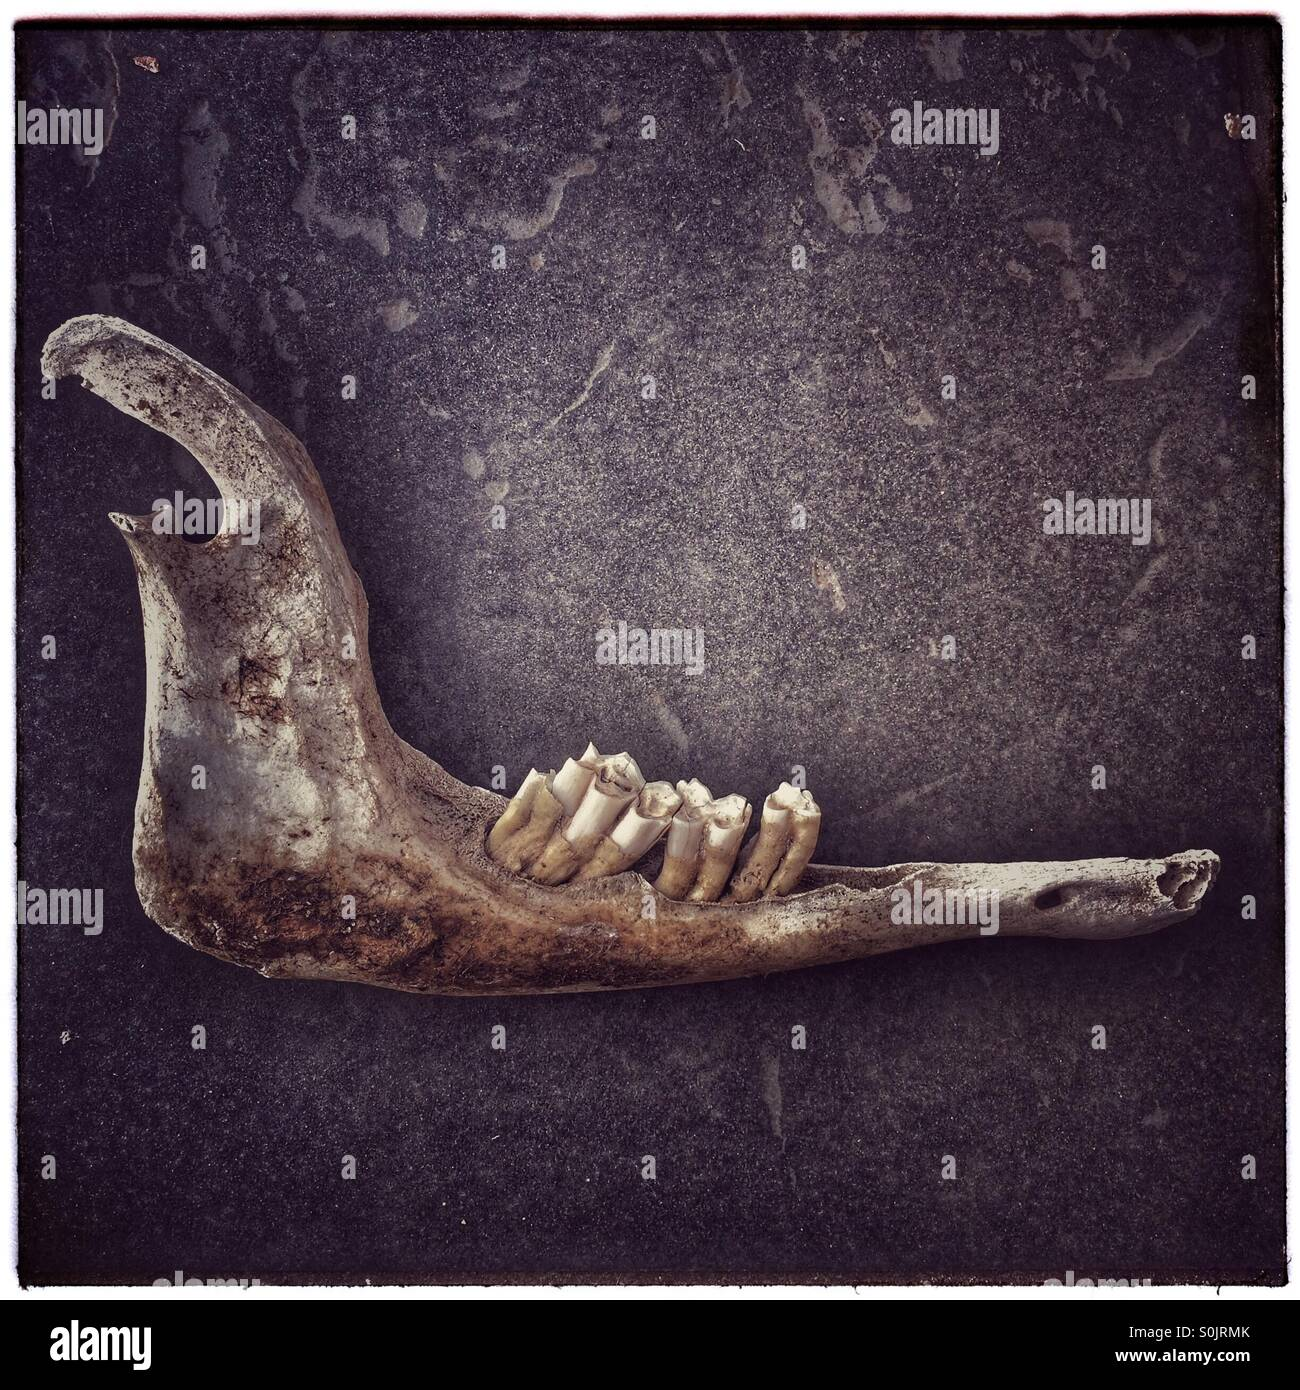 Animal jawbone stock photos animal jawbone stock images alamy jawbone and teeth of sheep stock image biocorpaavc Image collections